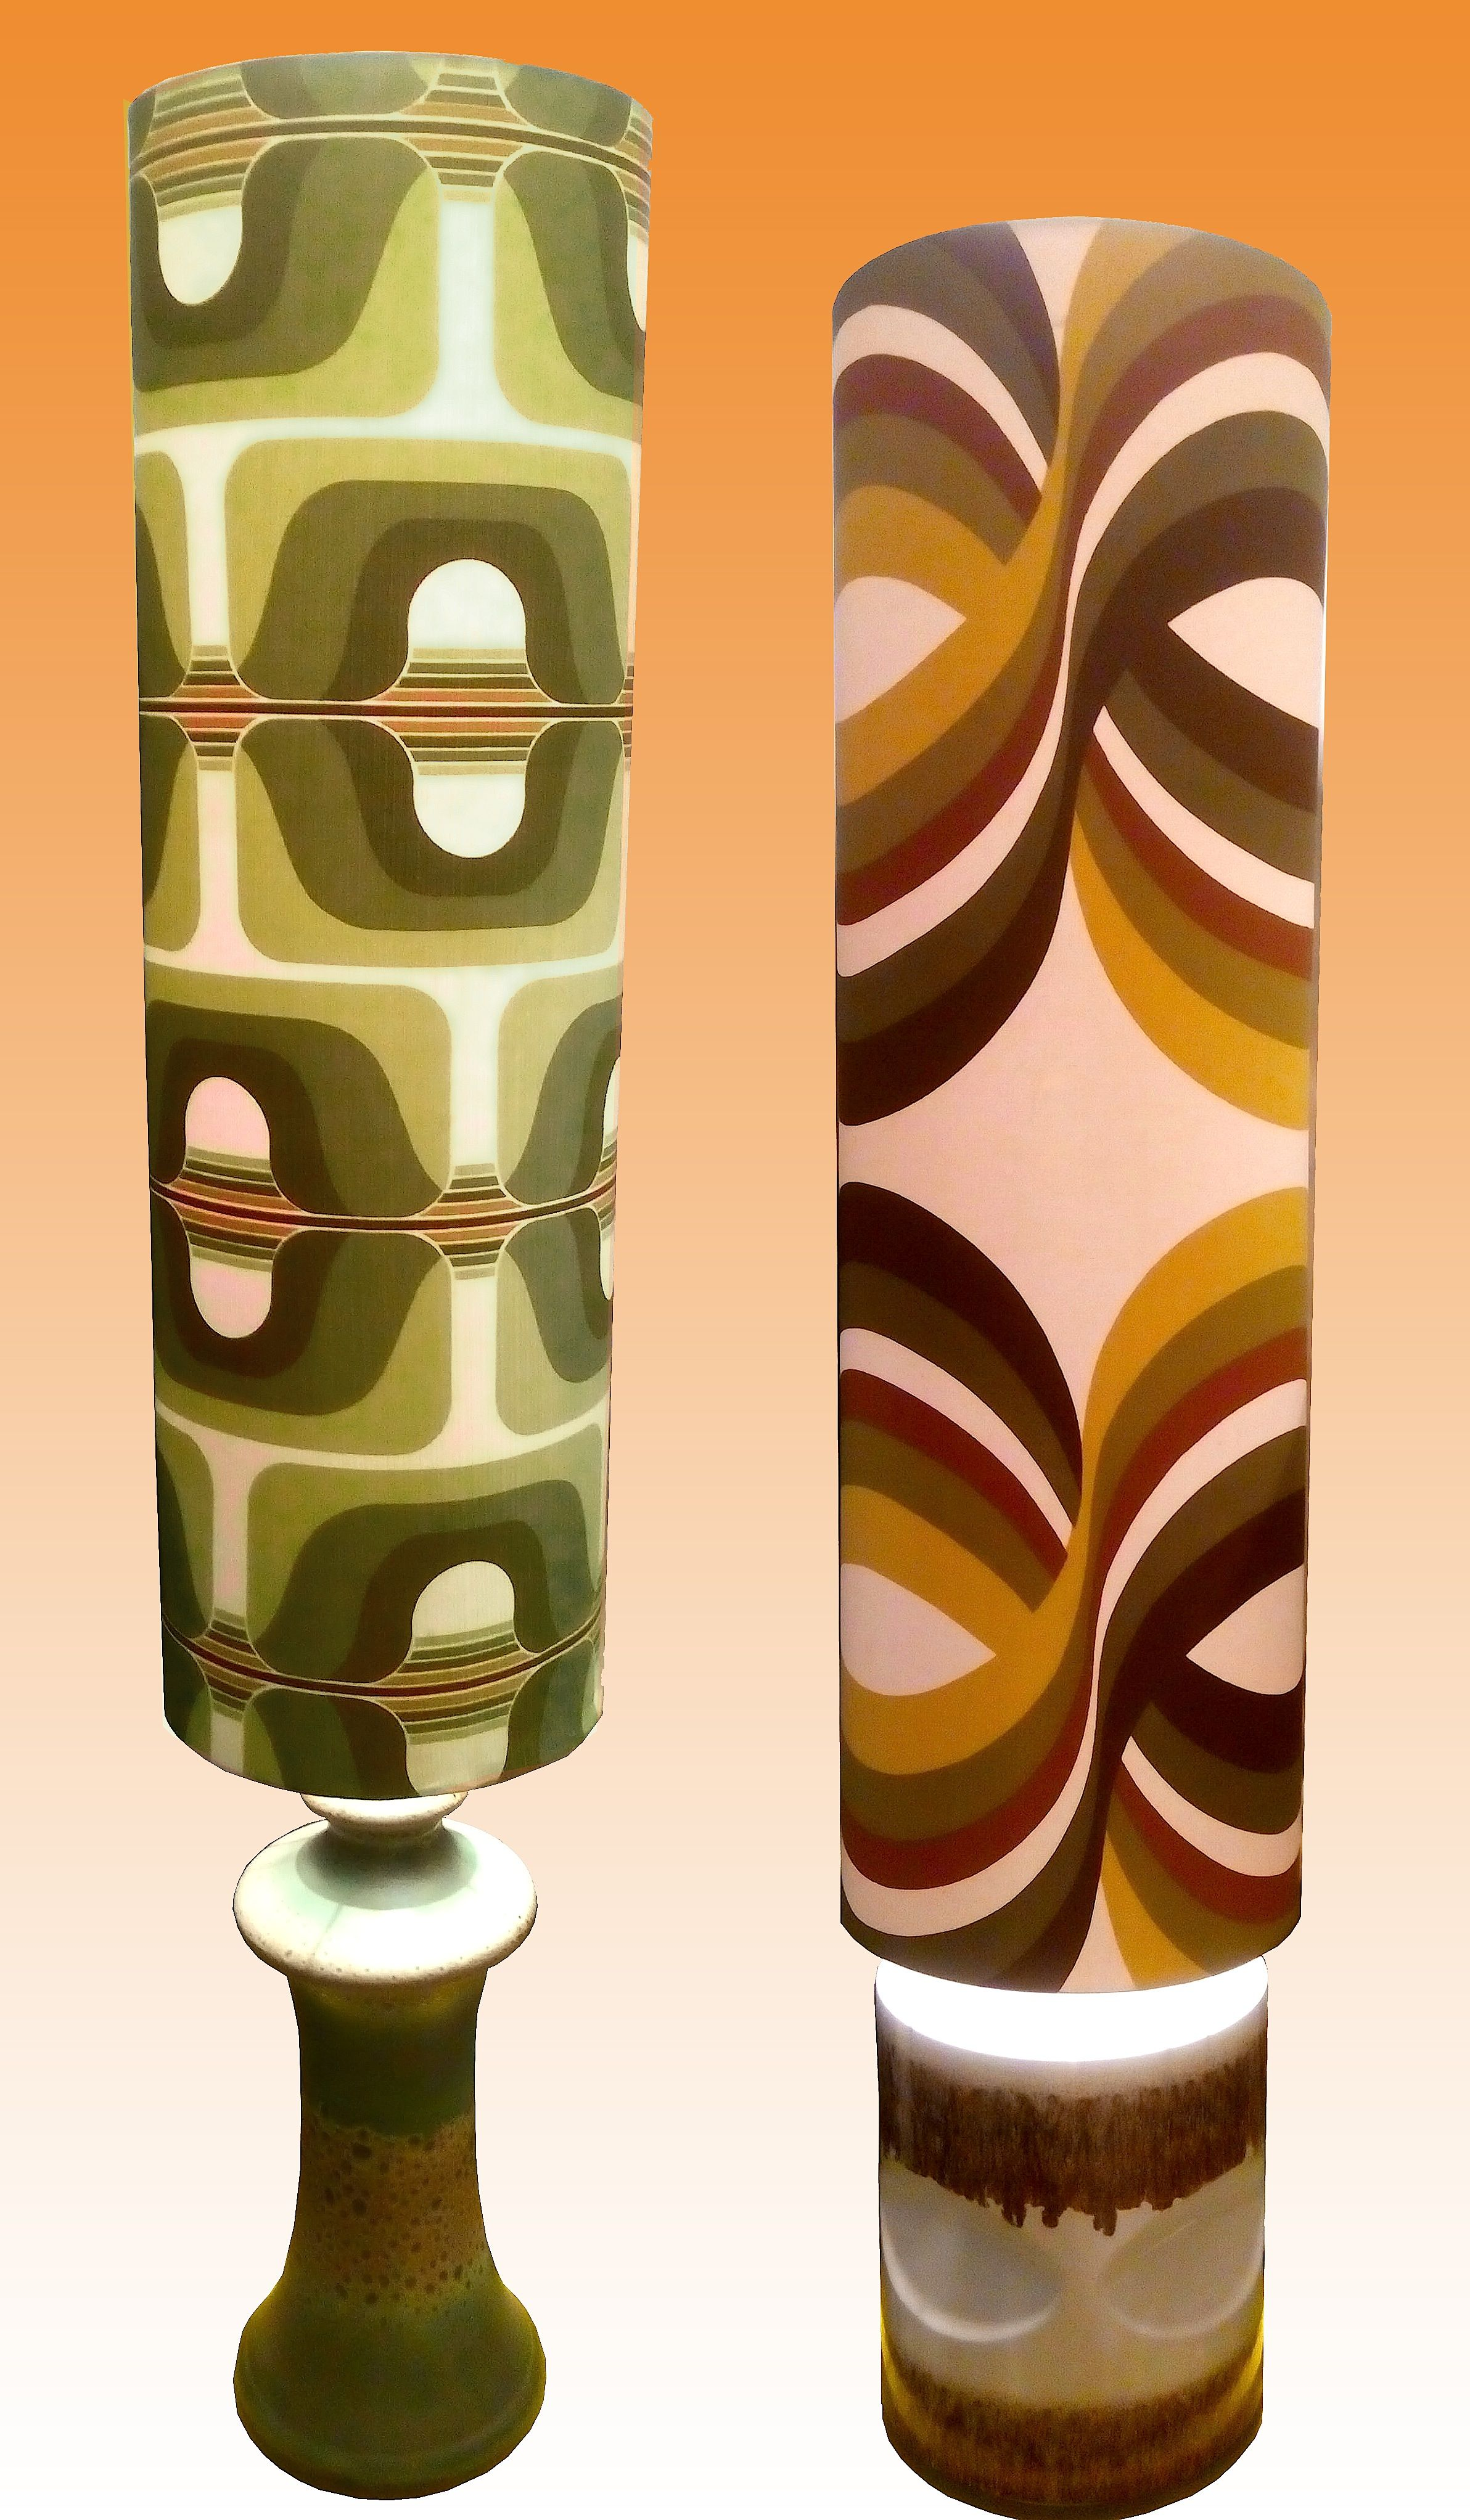 1960s-70s West German Floor Lamps with Gigantic Shades #Groovy ...